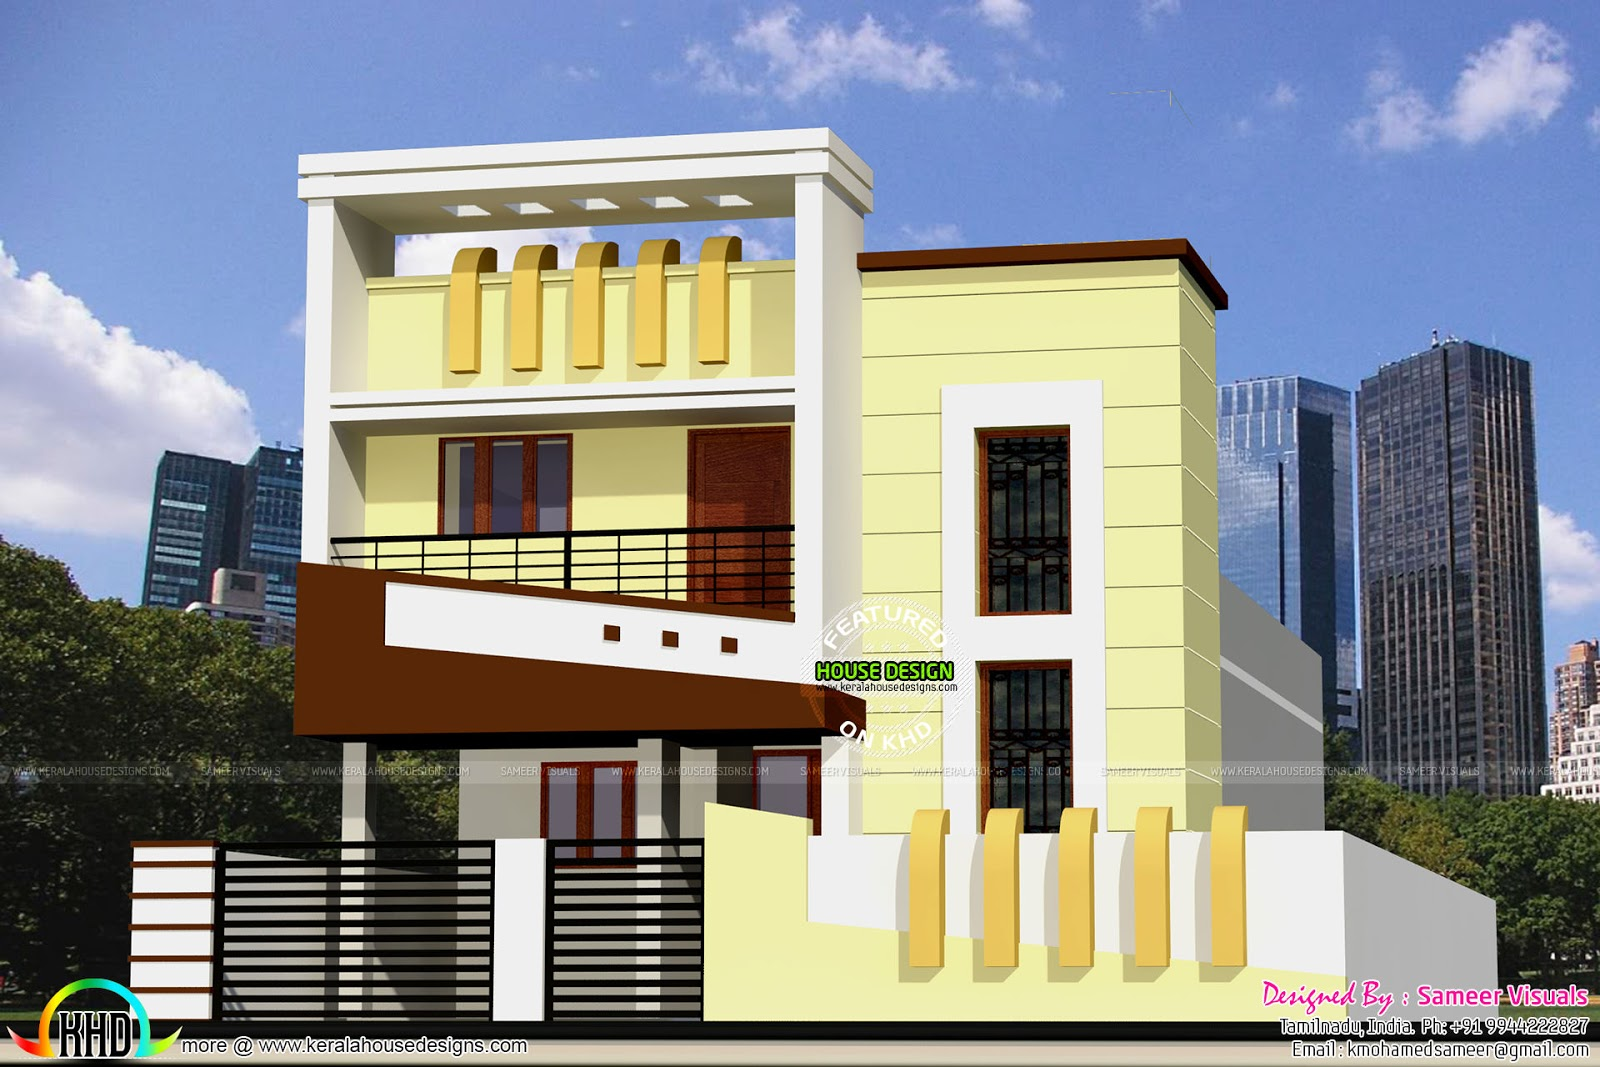 House specification ground floor 950 sq ft first floor 350 sq ft total area 1300 sq ft no of bedrooms 3 no of floors 3 design style modern